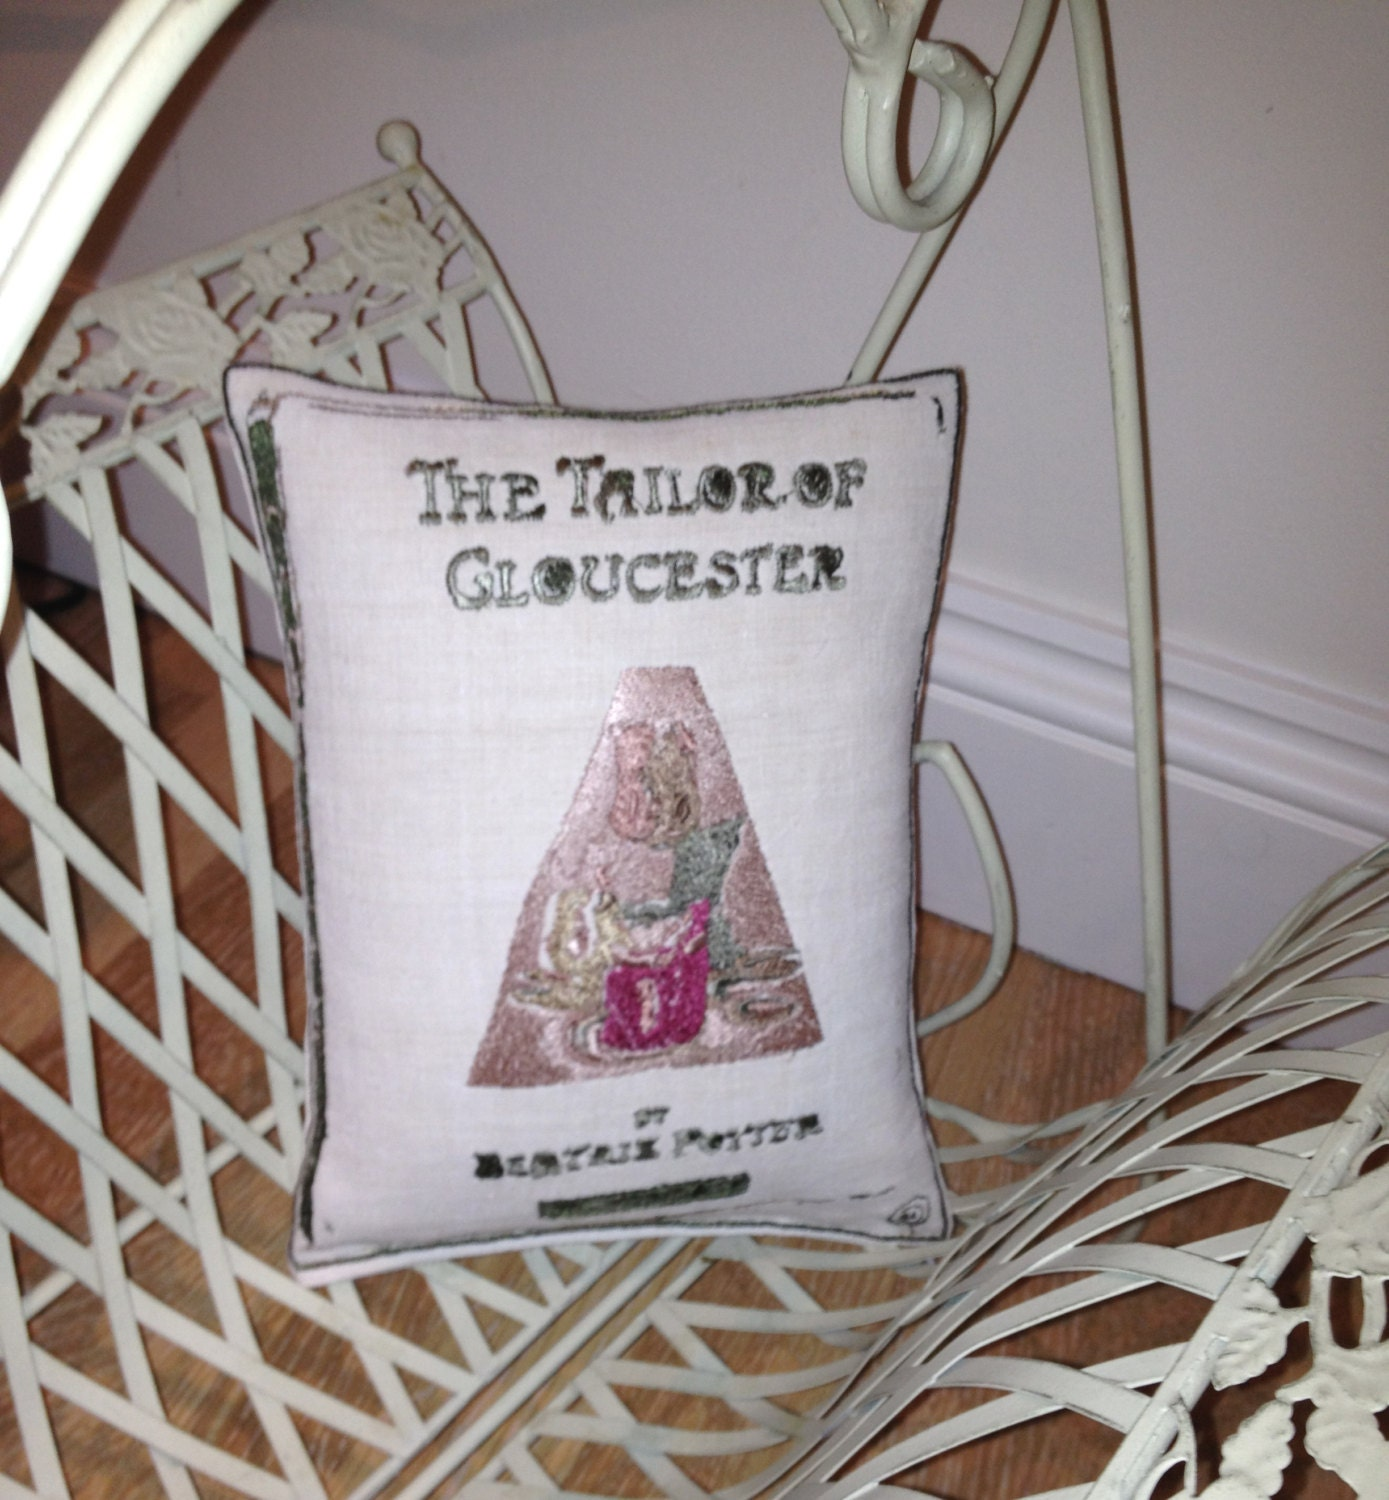 The Tailor Of GLOUCESTER, Beatrix Potter Artistic Embroidery Cushion Throw - Vintage Linen